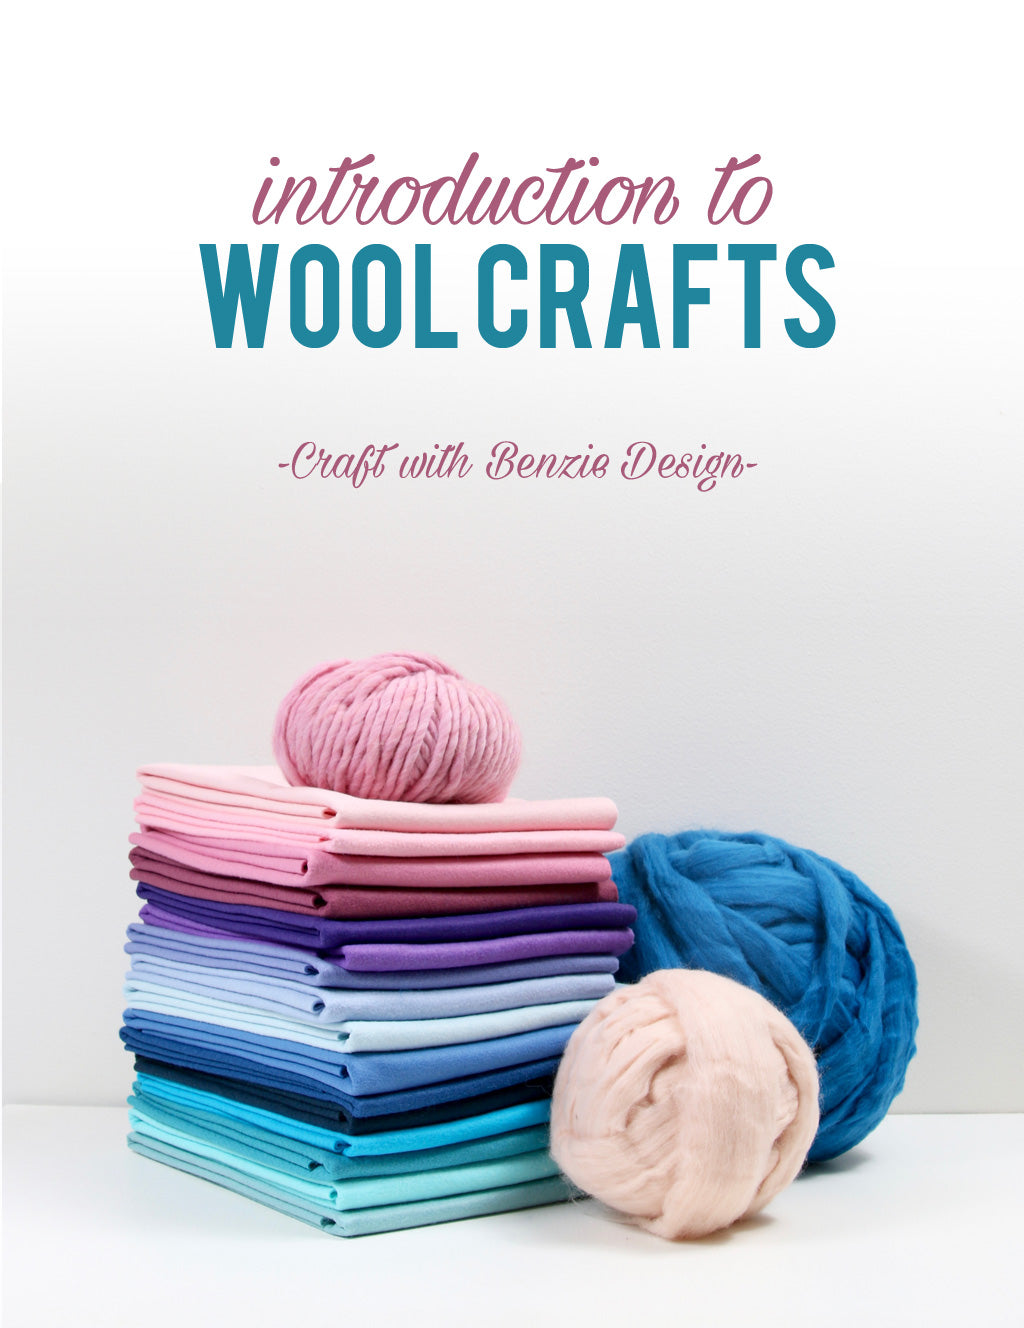 introduction to wool crafts